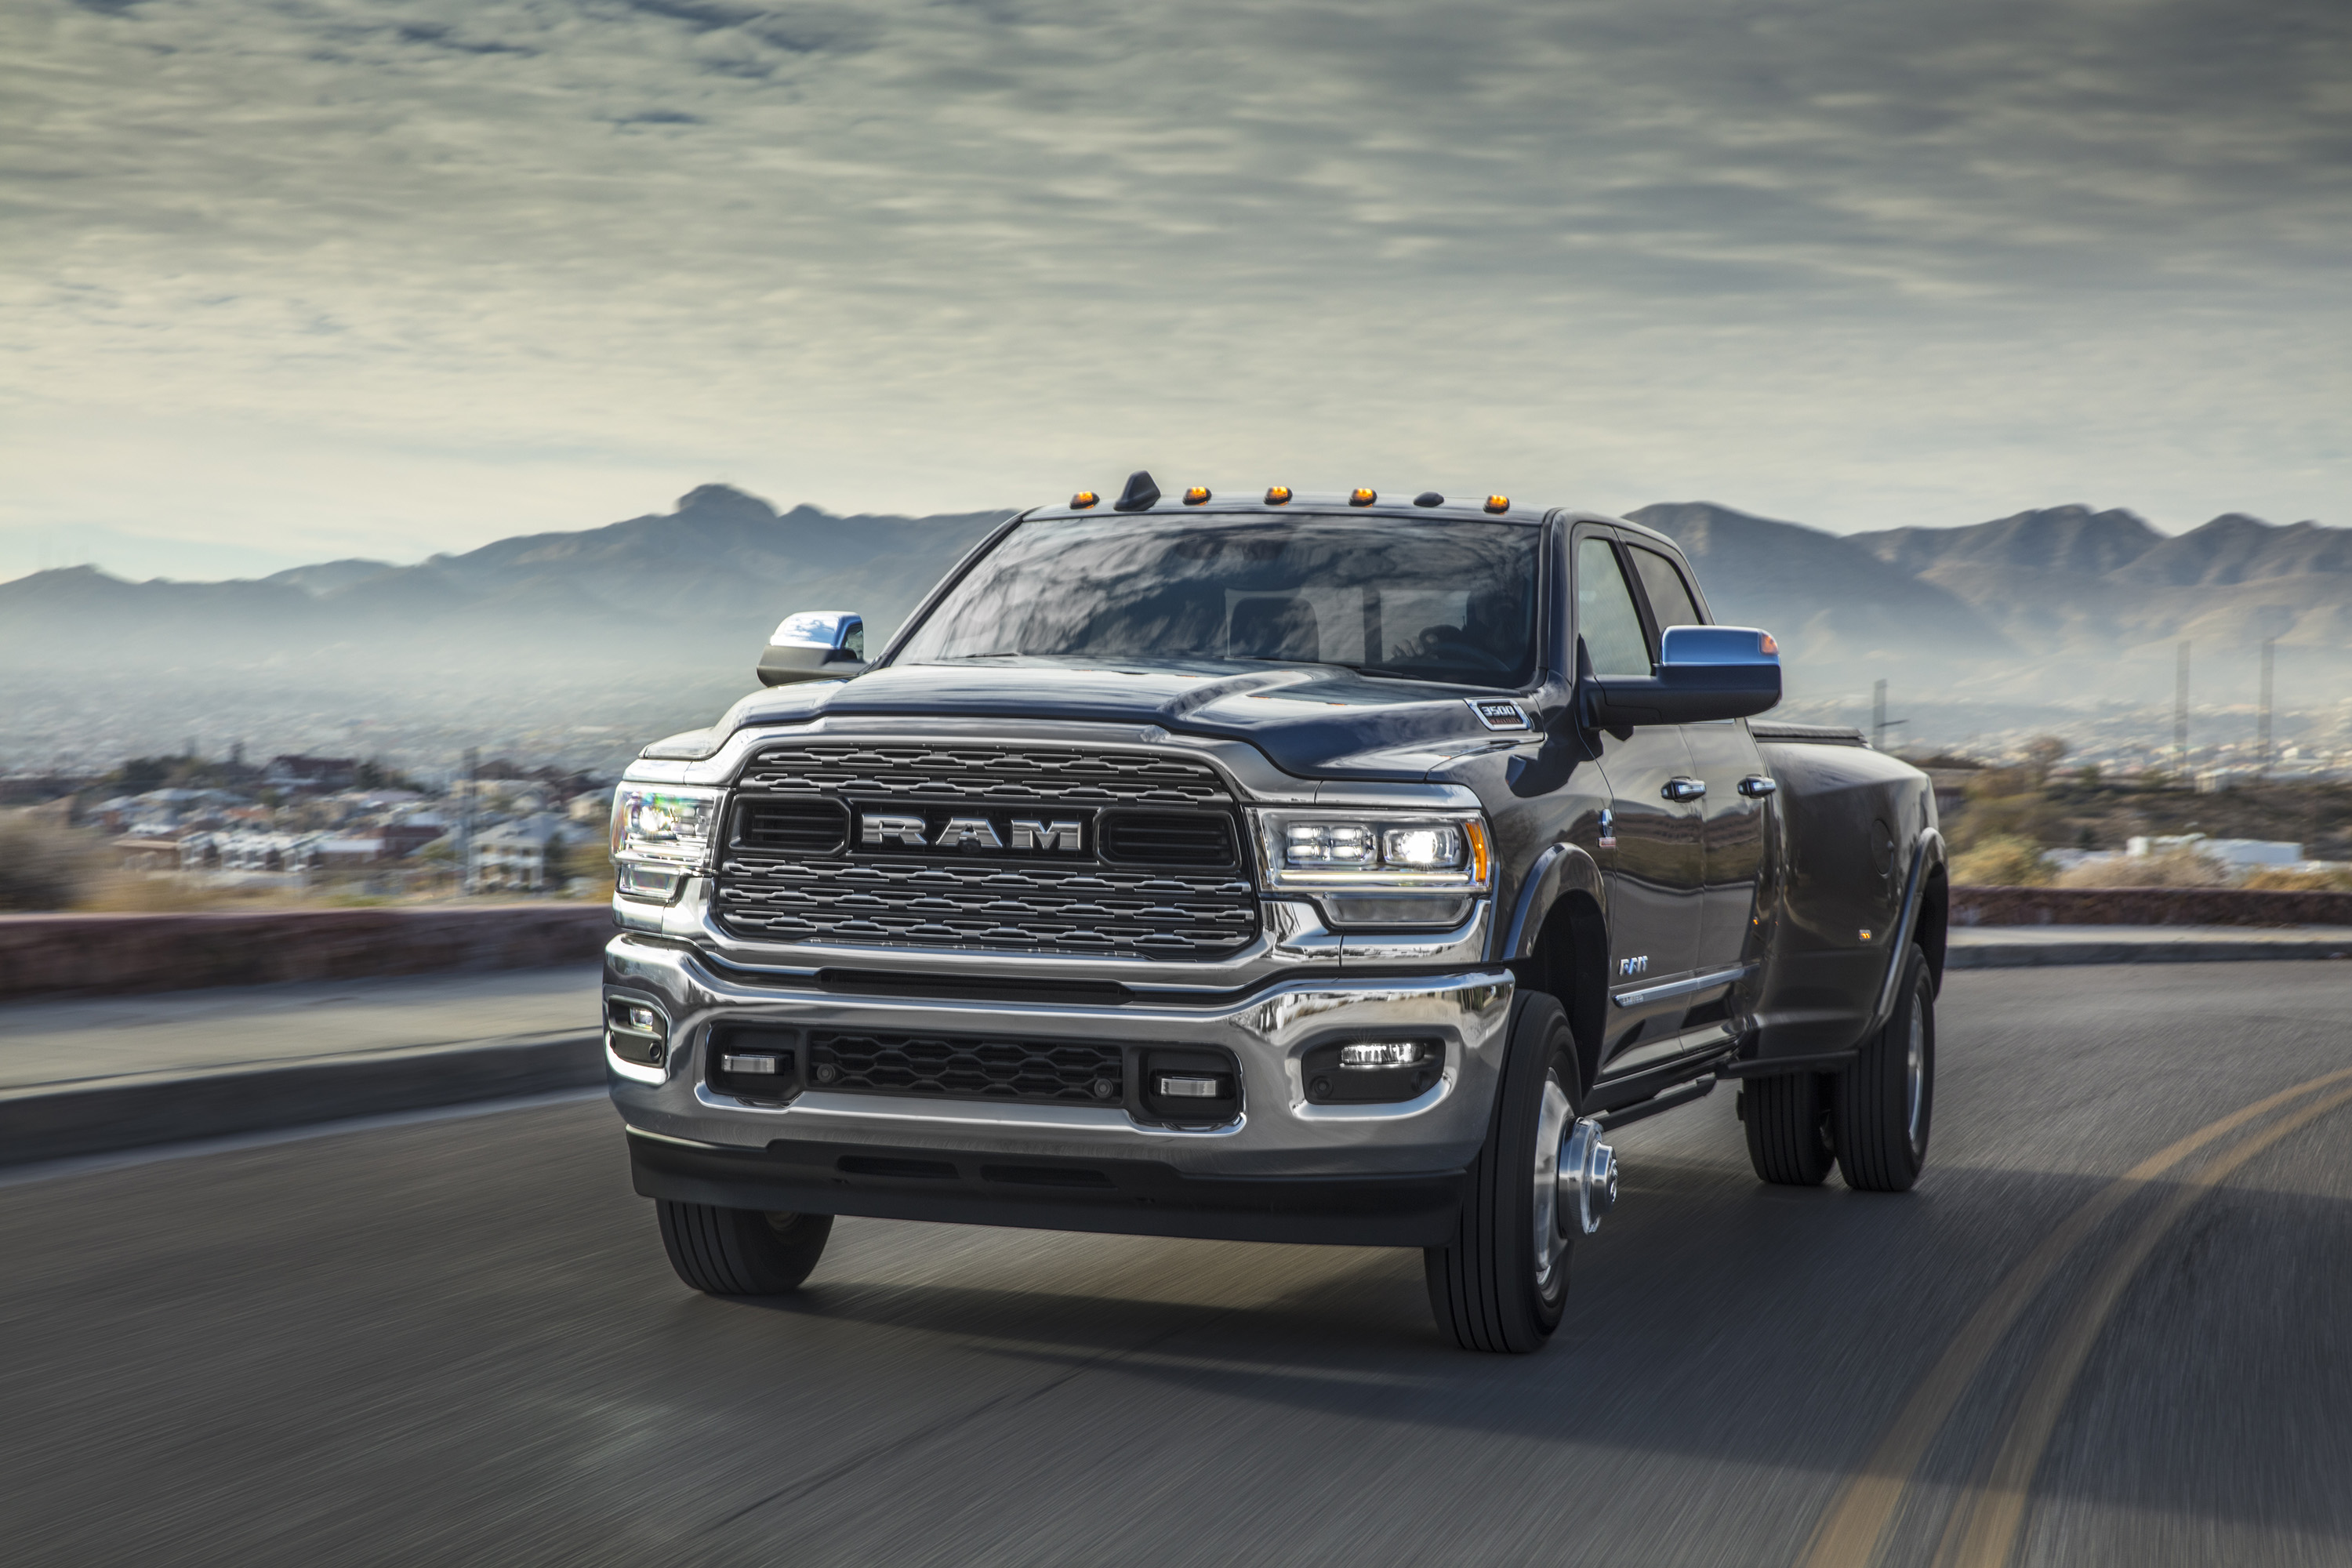 2019 Ram 3500 Heavy Duty Limited Crew Cab Dually Front Wallpapers (15)